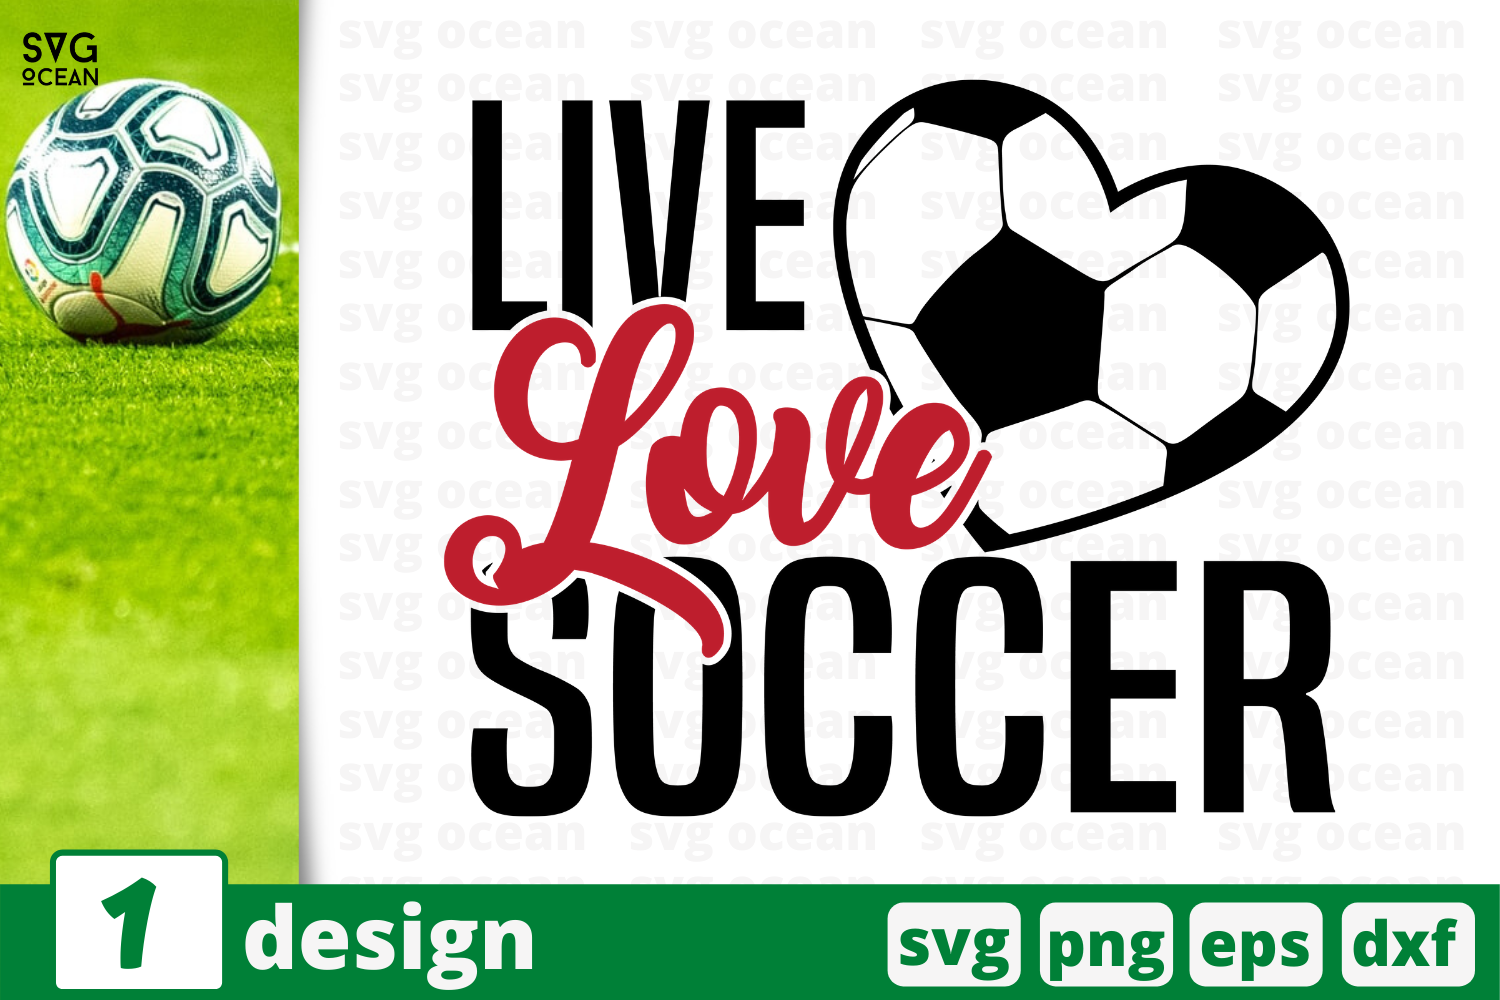 Live Love Soccer Graphic By Svgocean Creative Fabrica